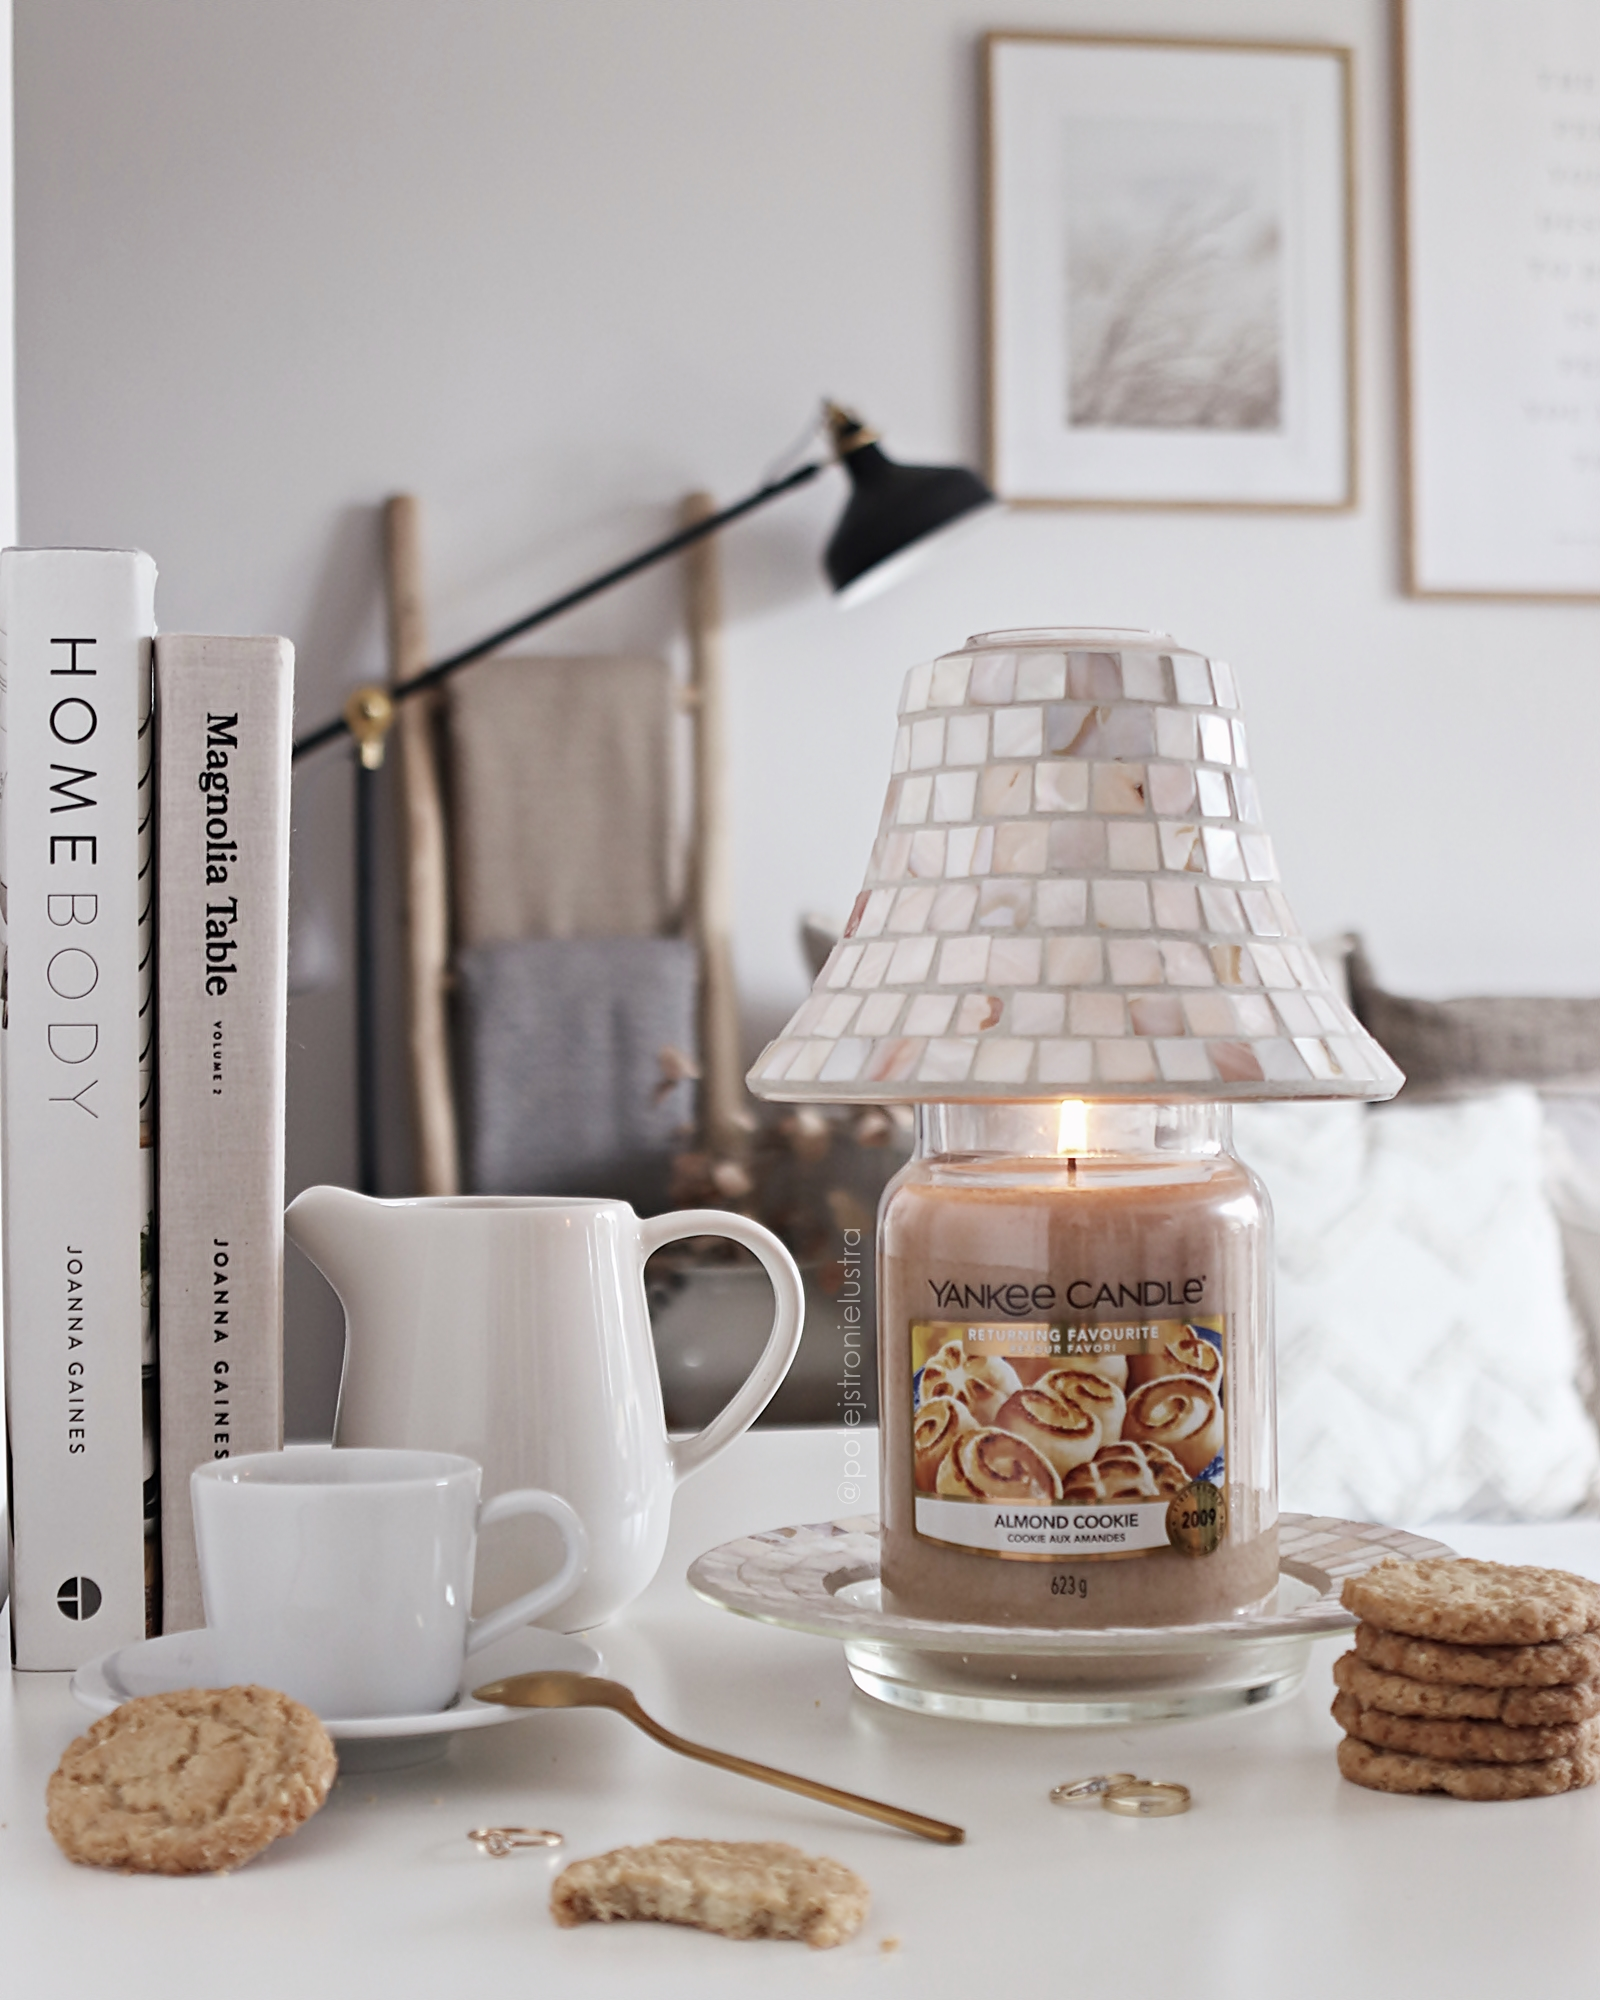 yankee candle almond cookie